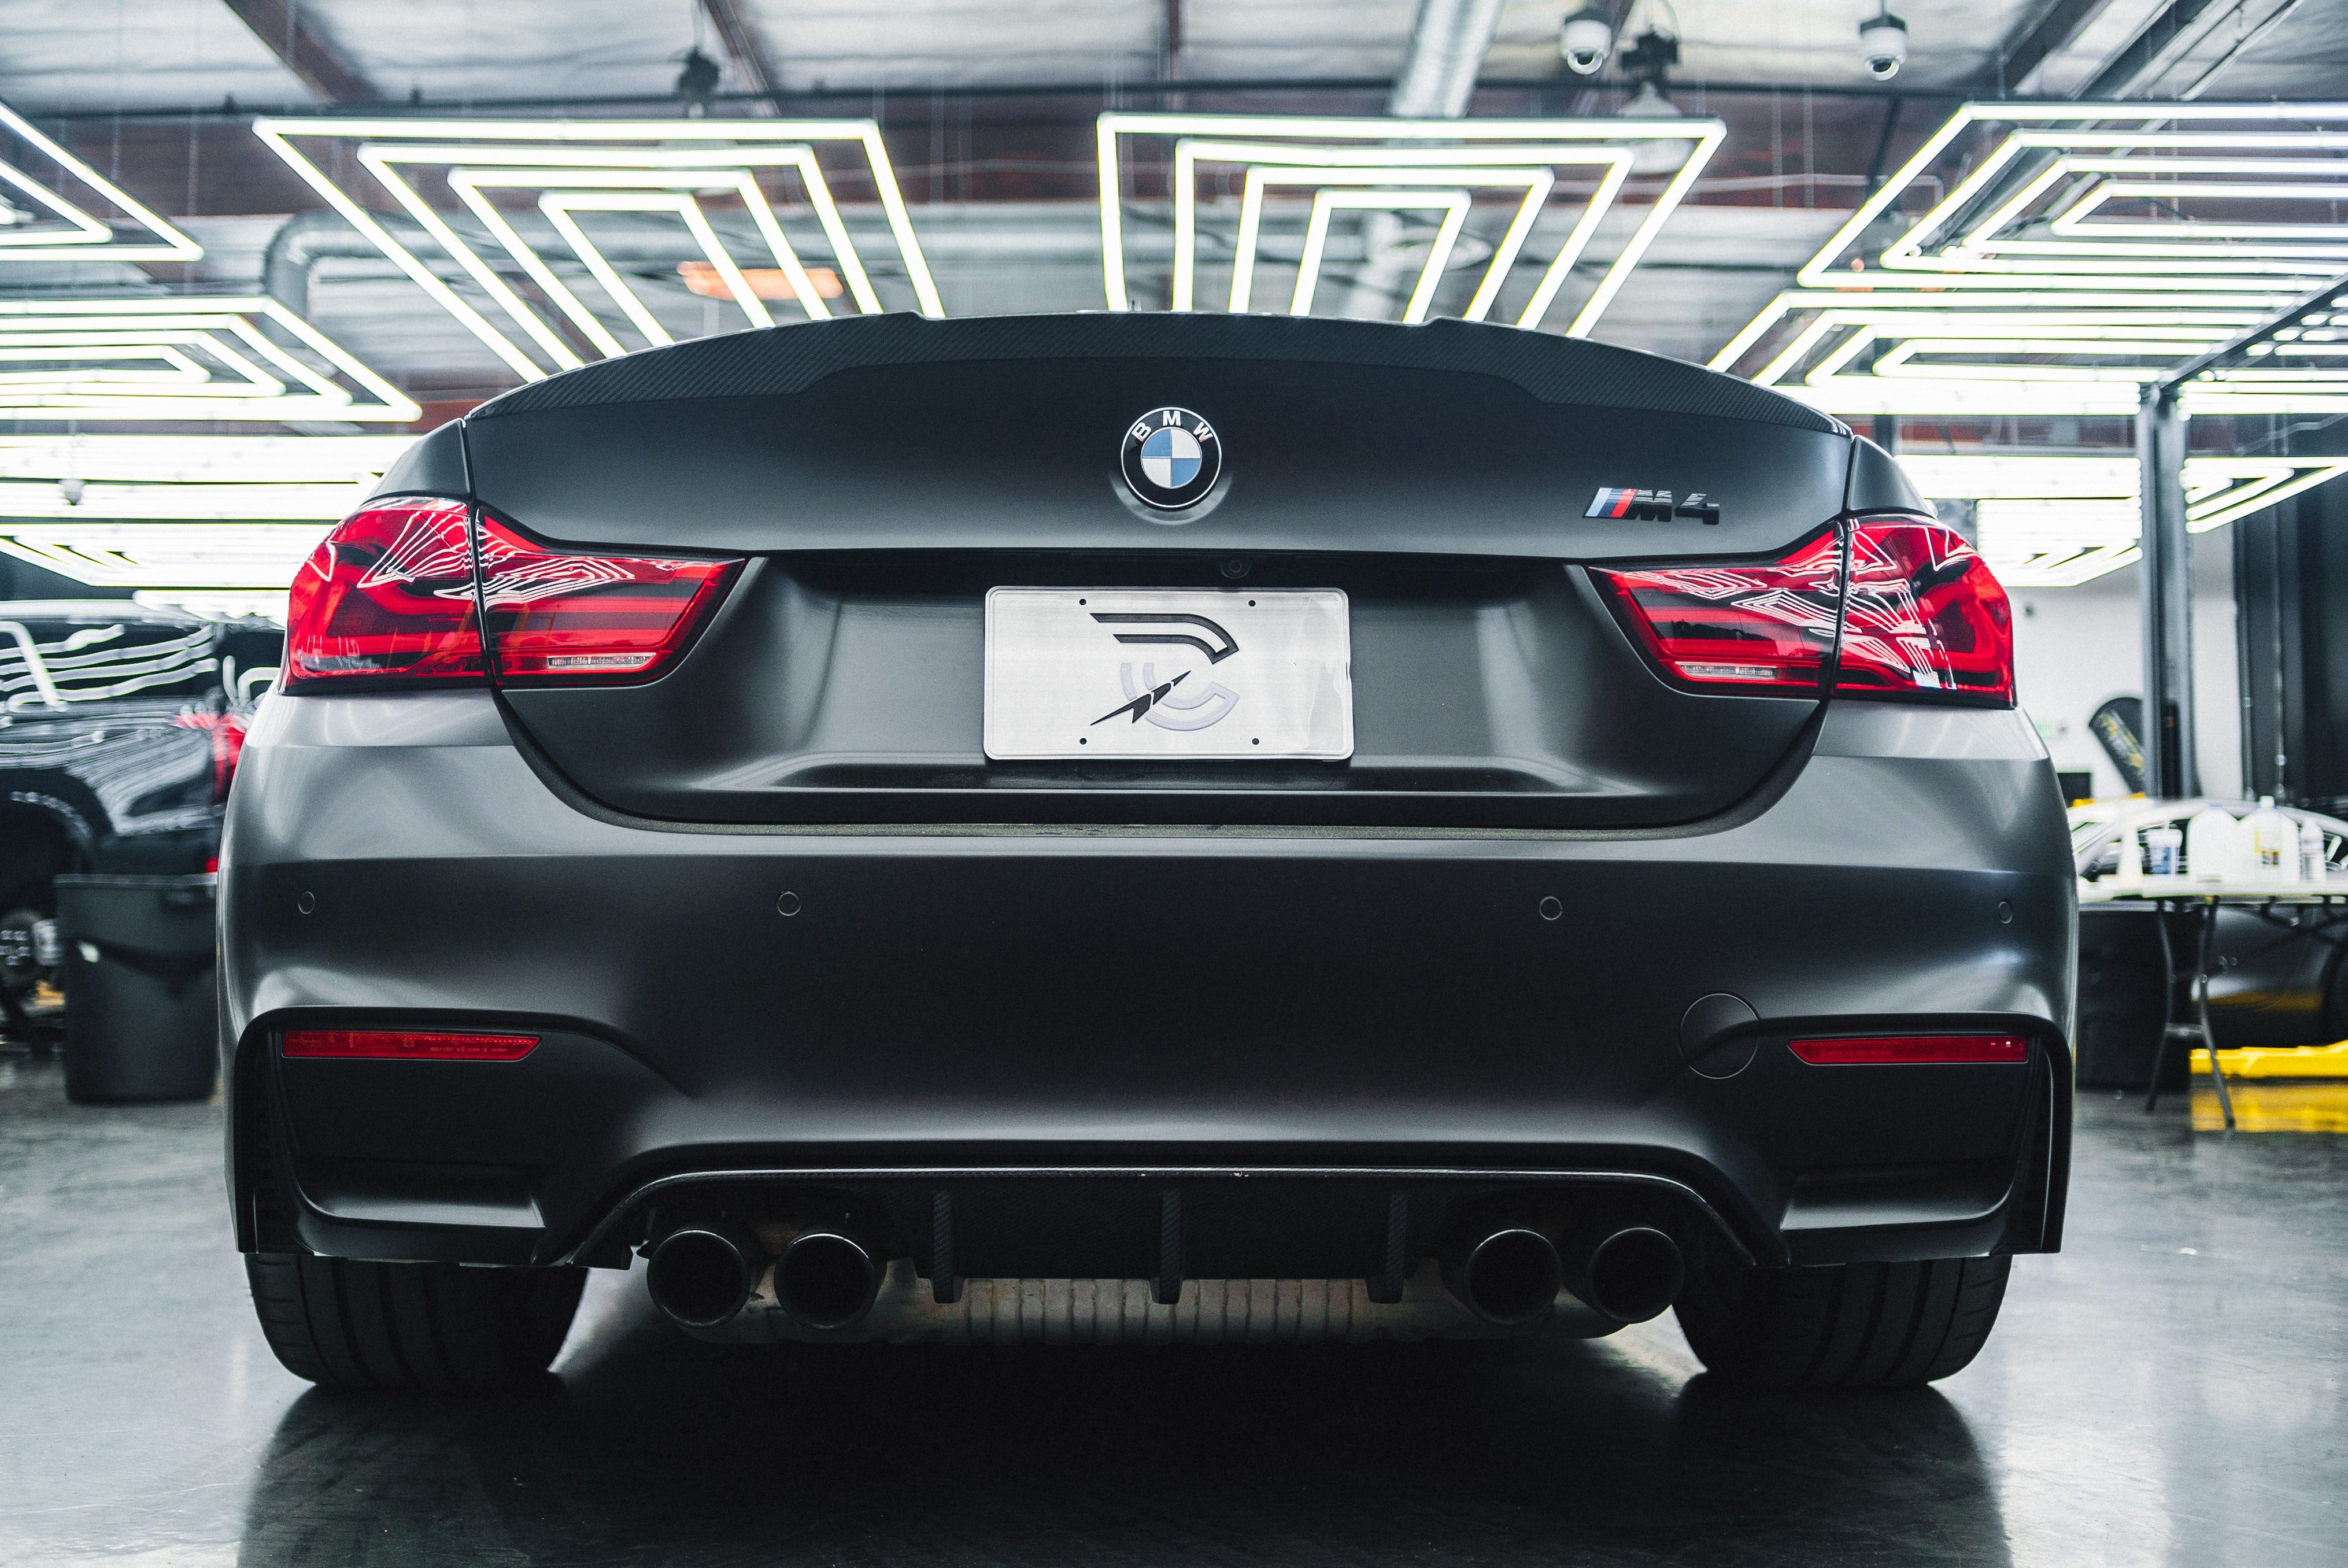 Pictured - A black BMW M4 coupe   Source: Pexels